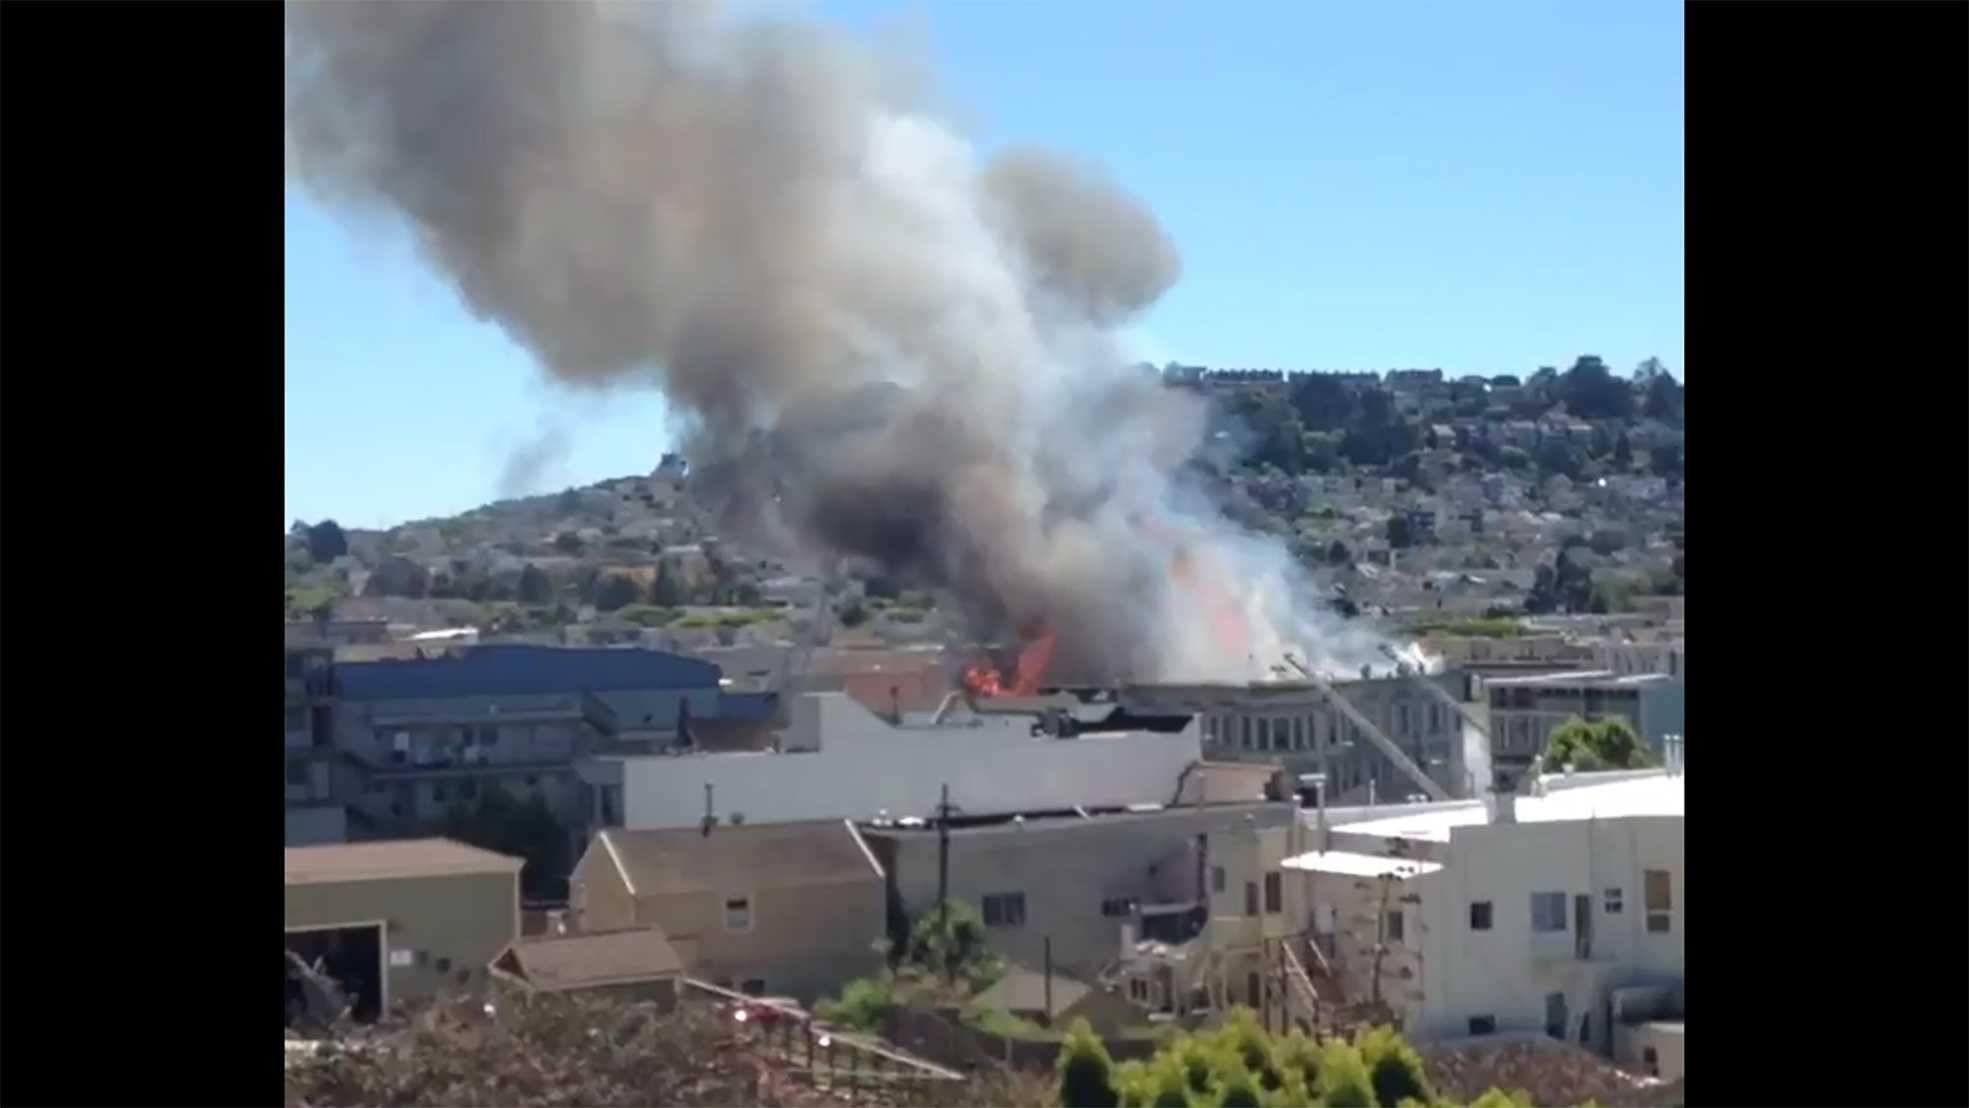 A five-alarm fire broke out in San Francisco's Bernal Heights neighborhood Saturday afternoon, officials said.